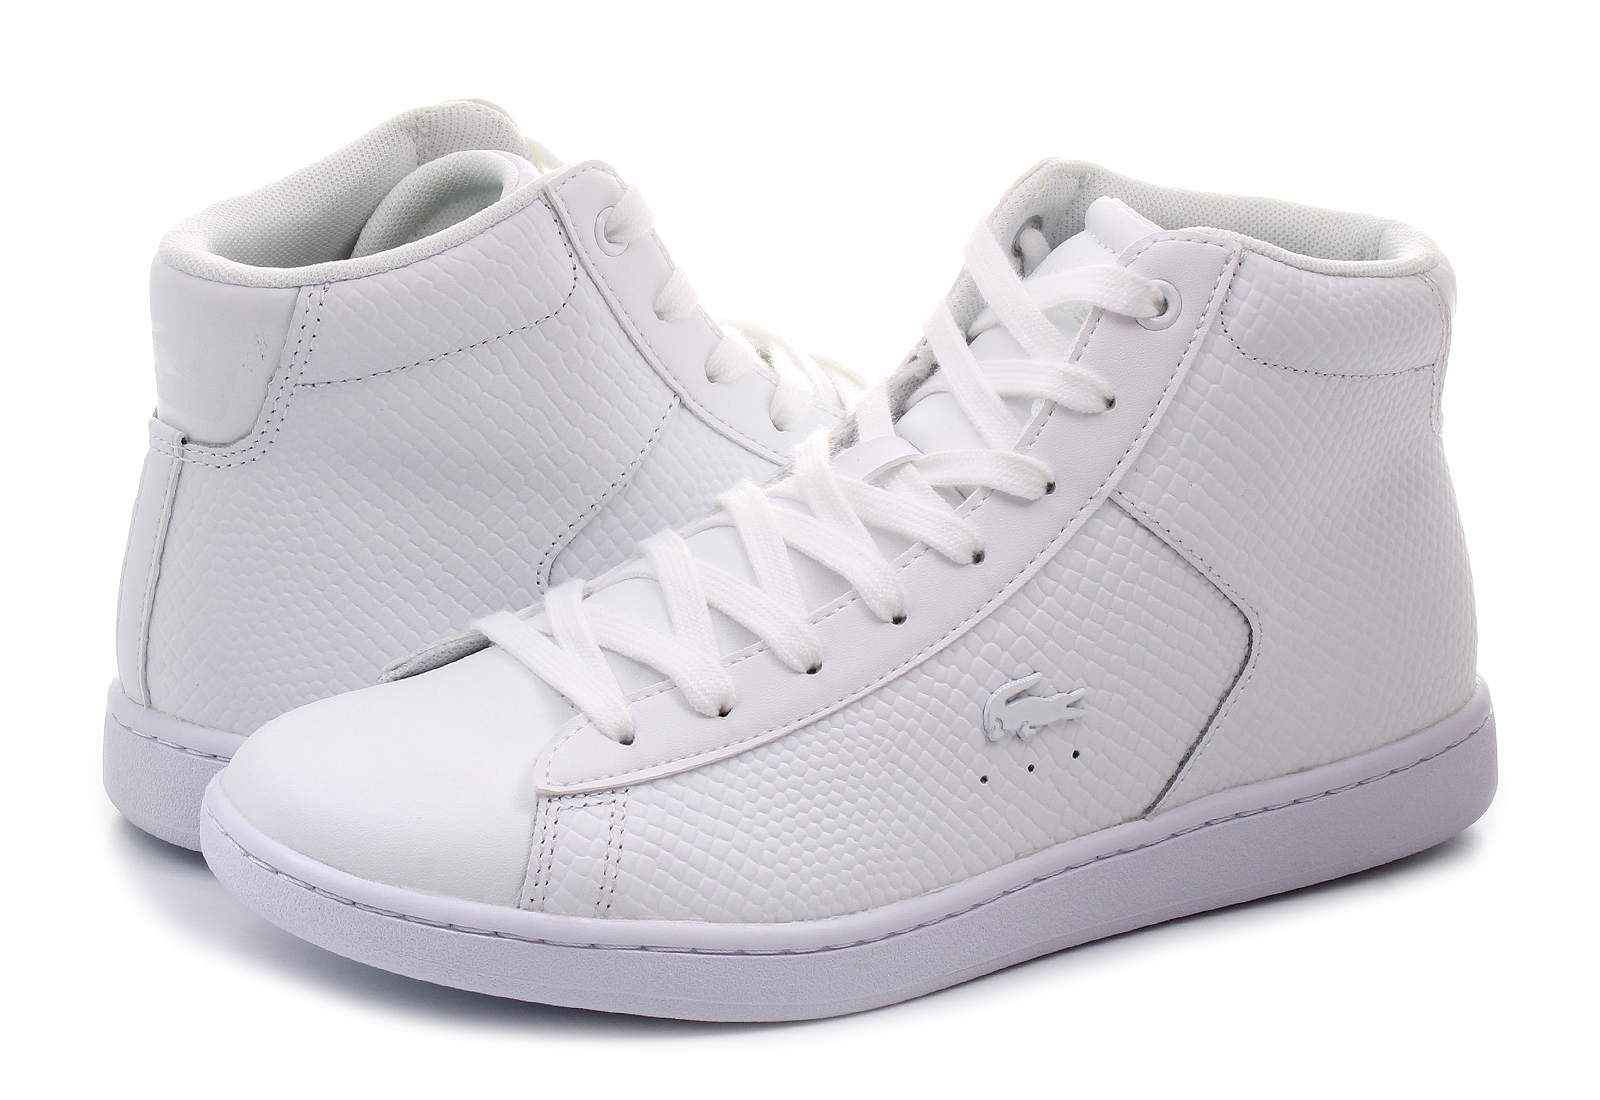 Lacoste Cipő - Carnaby Evo Mid - 173SPW0015-001 - Office Shoes ... 88c6f0e9c4